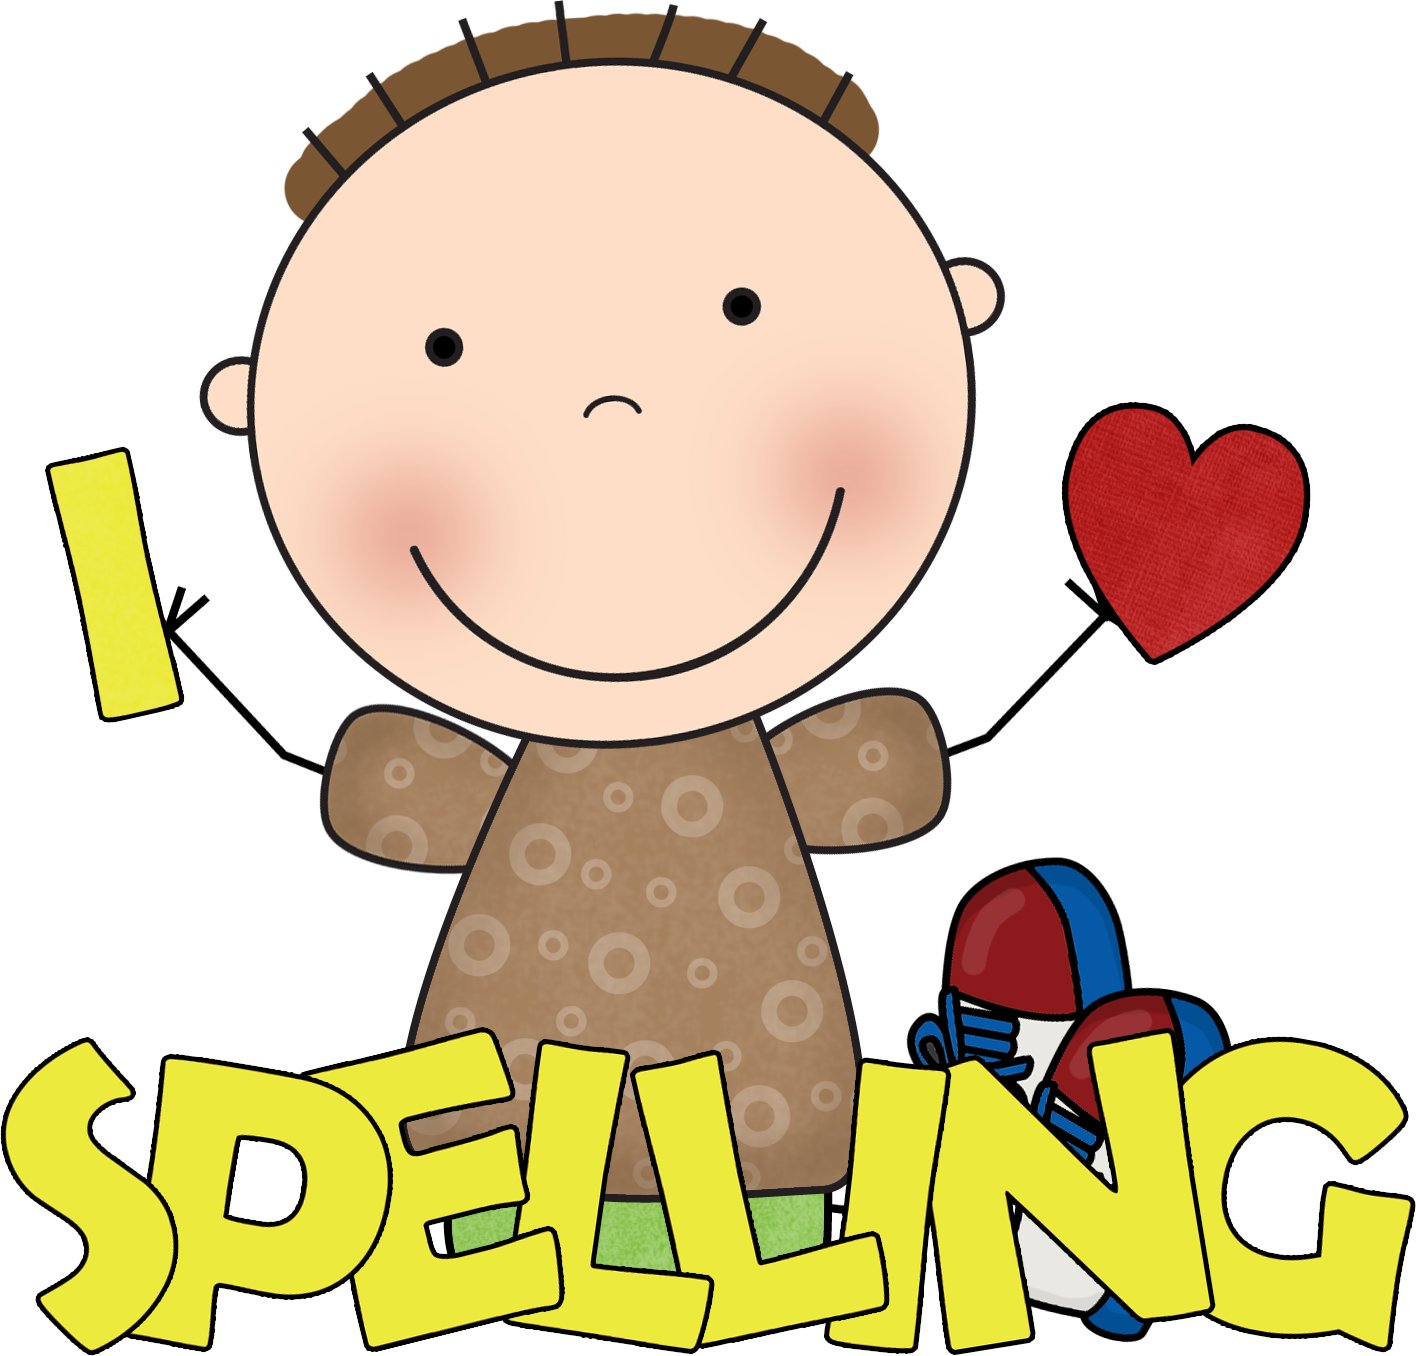 Clipart spelling test freeuse library Free Spell Cliparts, Download Free Clip Art, Free Clip Art on ... freeuse library